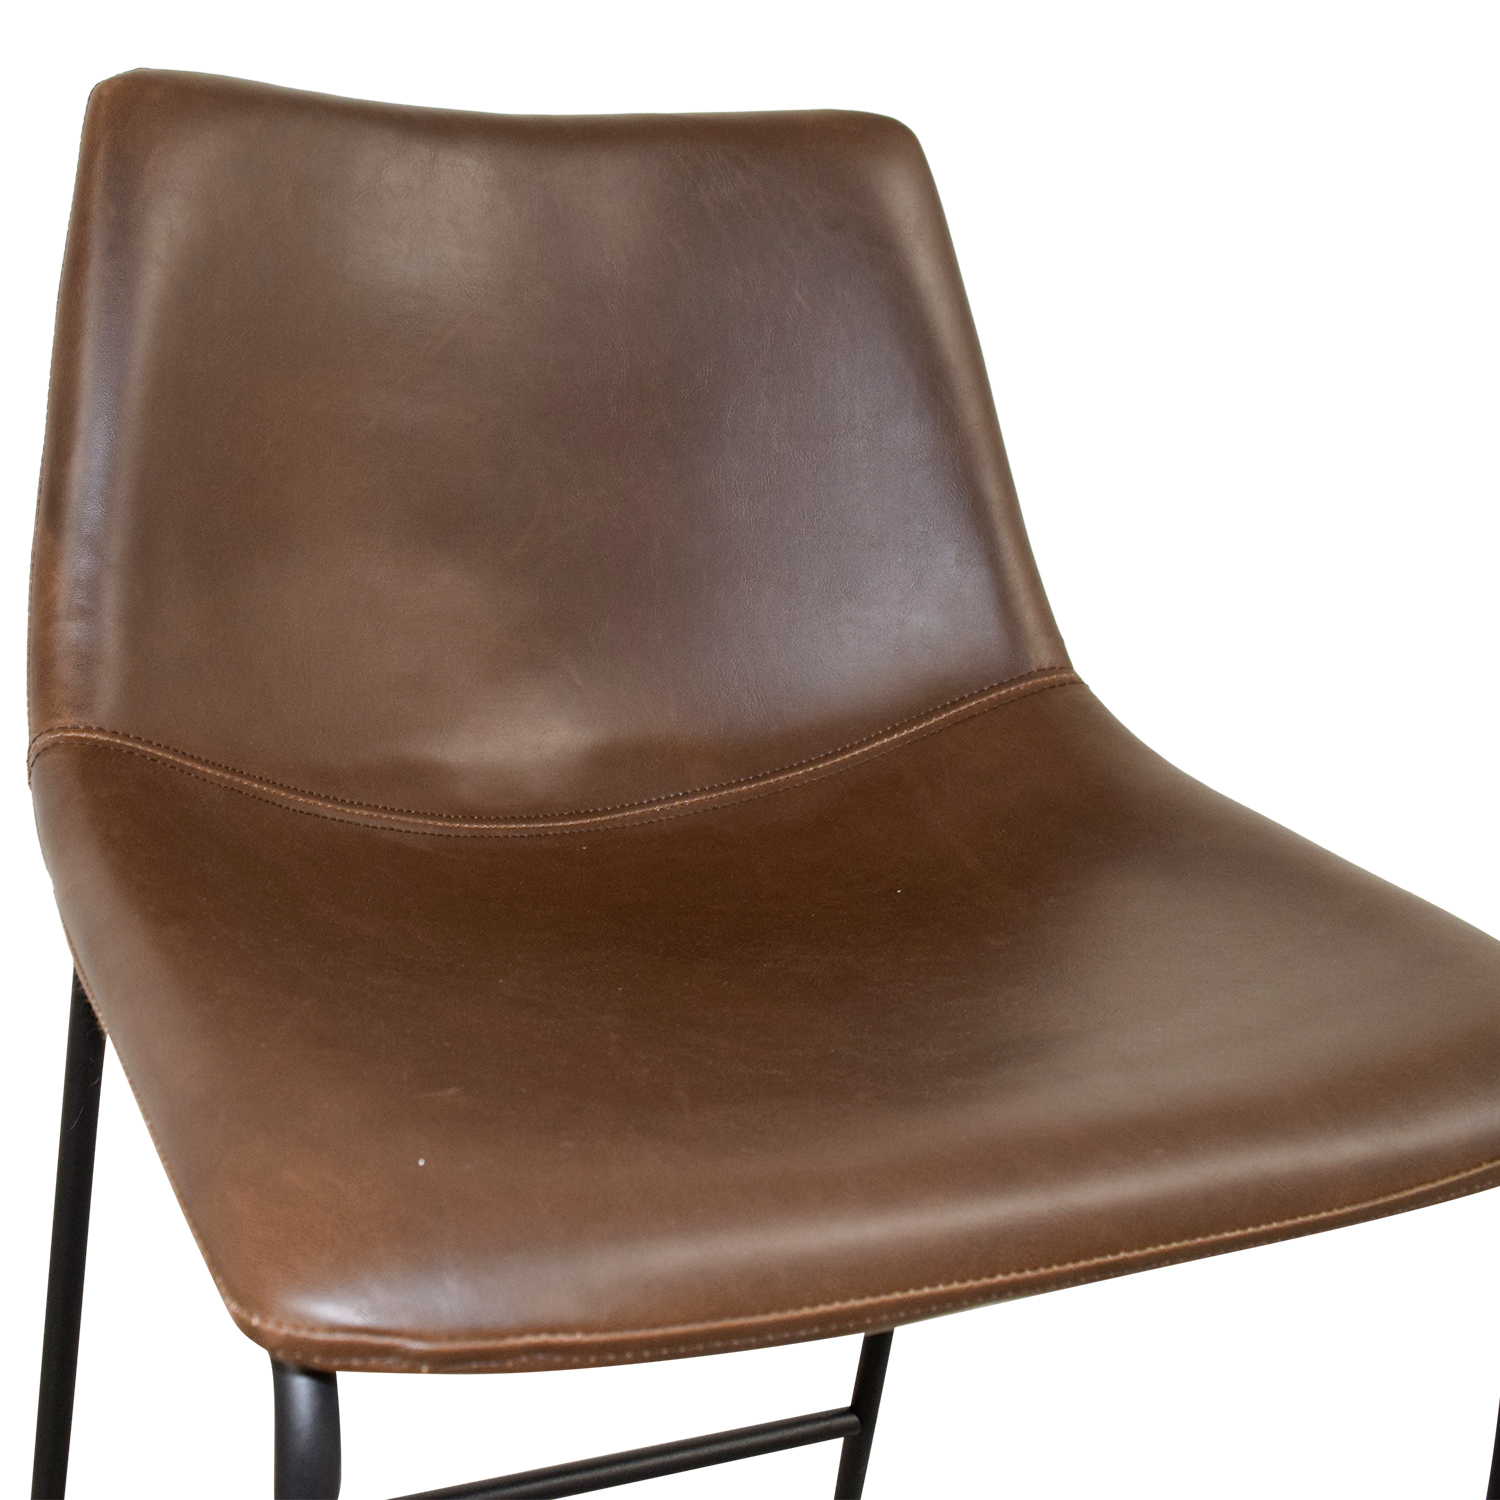 Coaster Coaster Retro Brown Leatherette Counter Height Chair Black / Brown